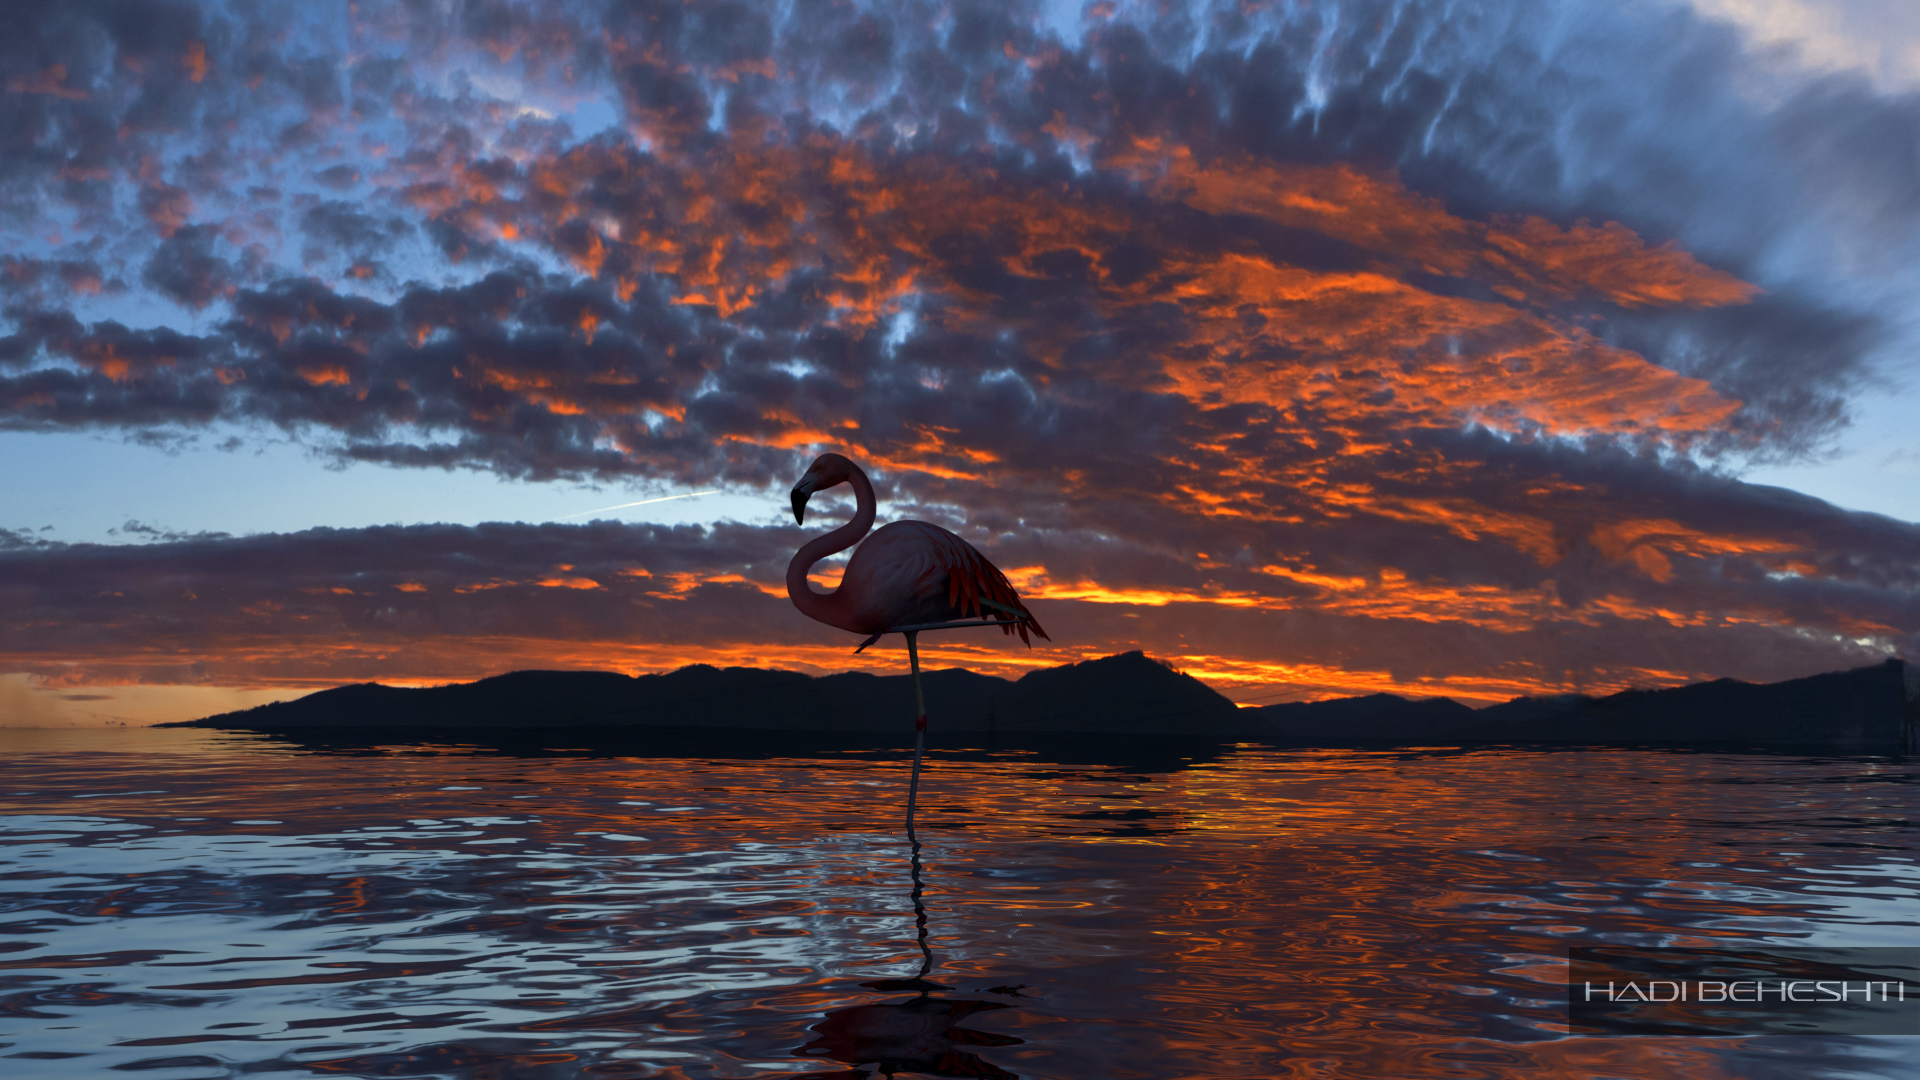 Flamingo Rendering-by Hadi Beheshti